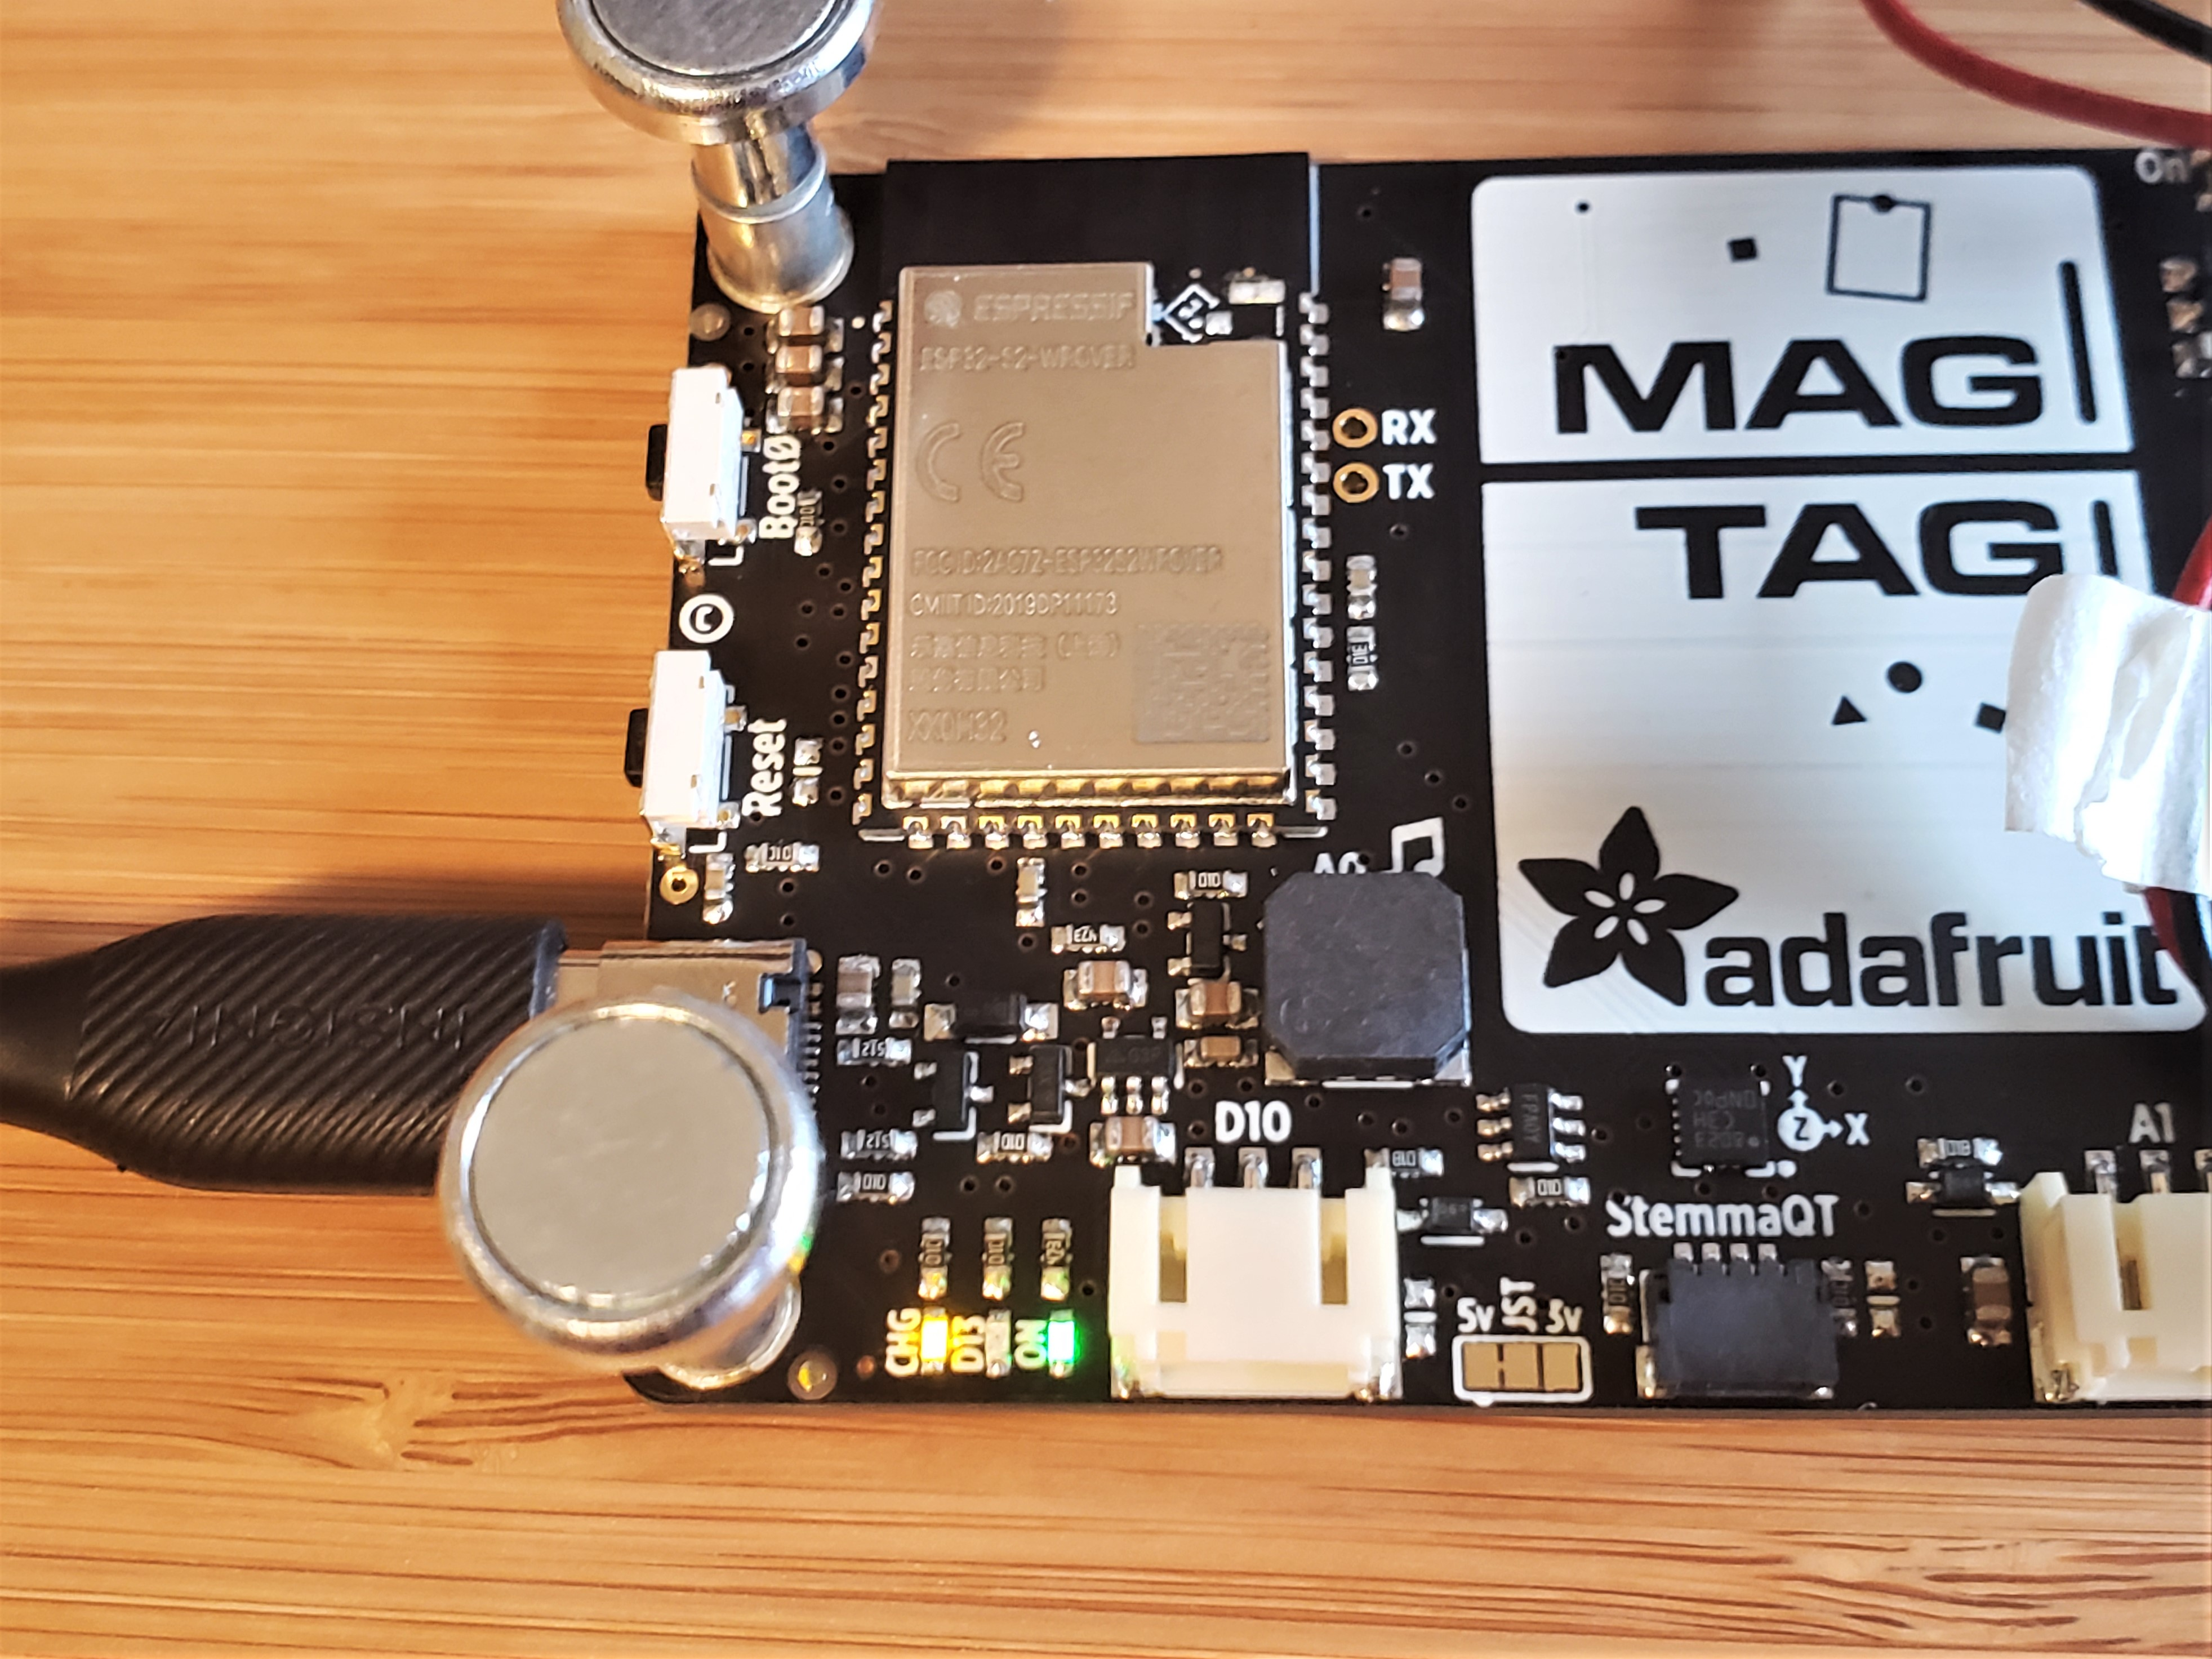 adafruit_products_MagTag-BatteryCharge.jpg